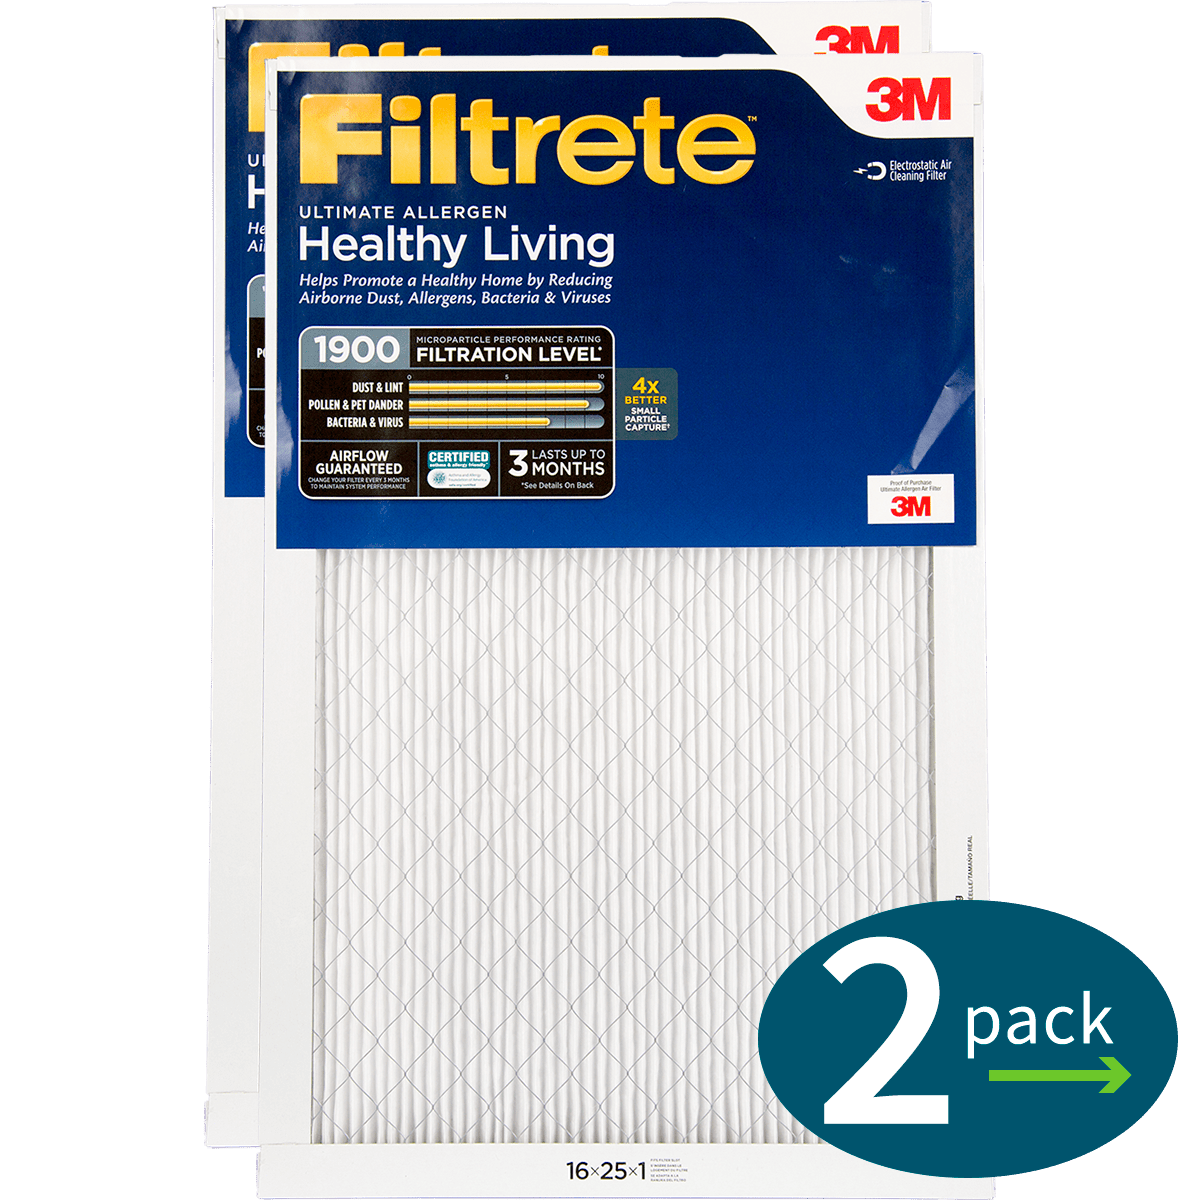 3m Filtrete Healthy Living 1900 Mpr Ultimate Allergen Reduction Air Filters